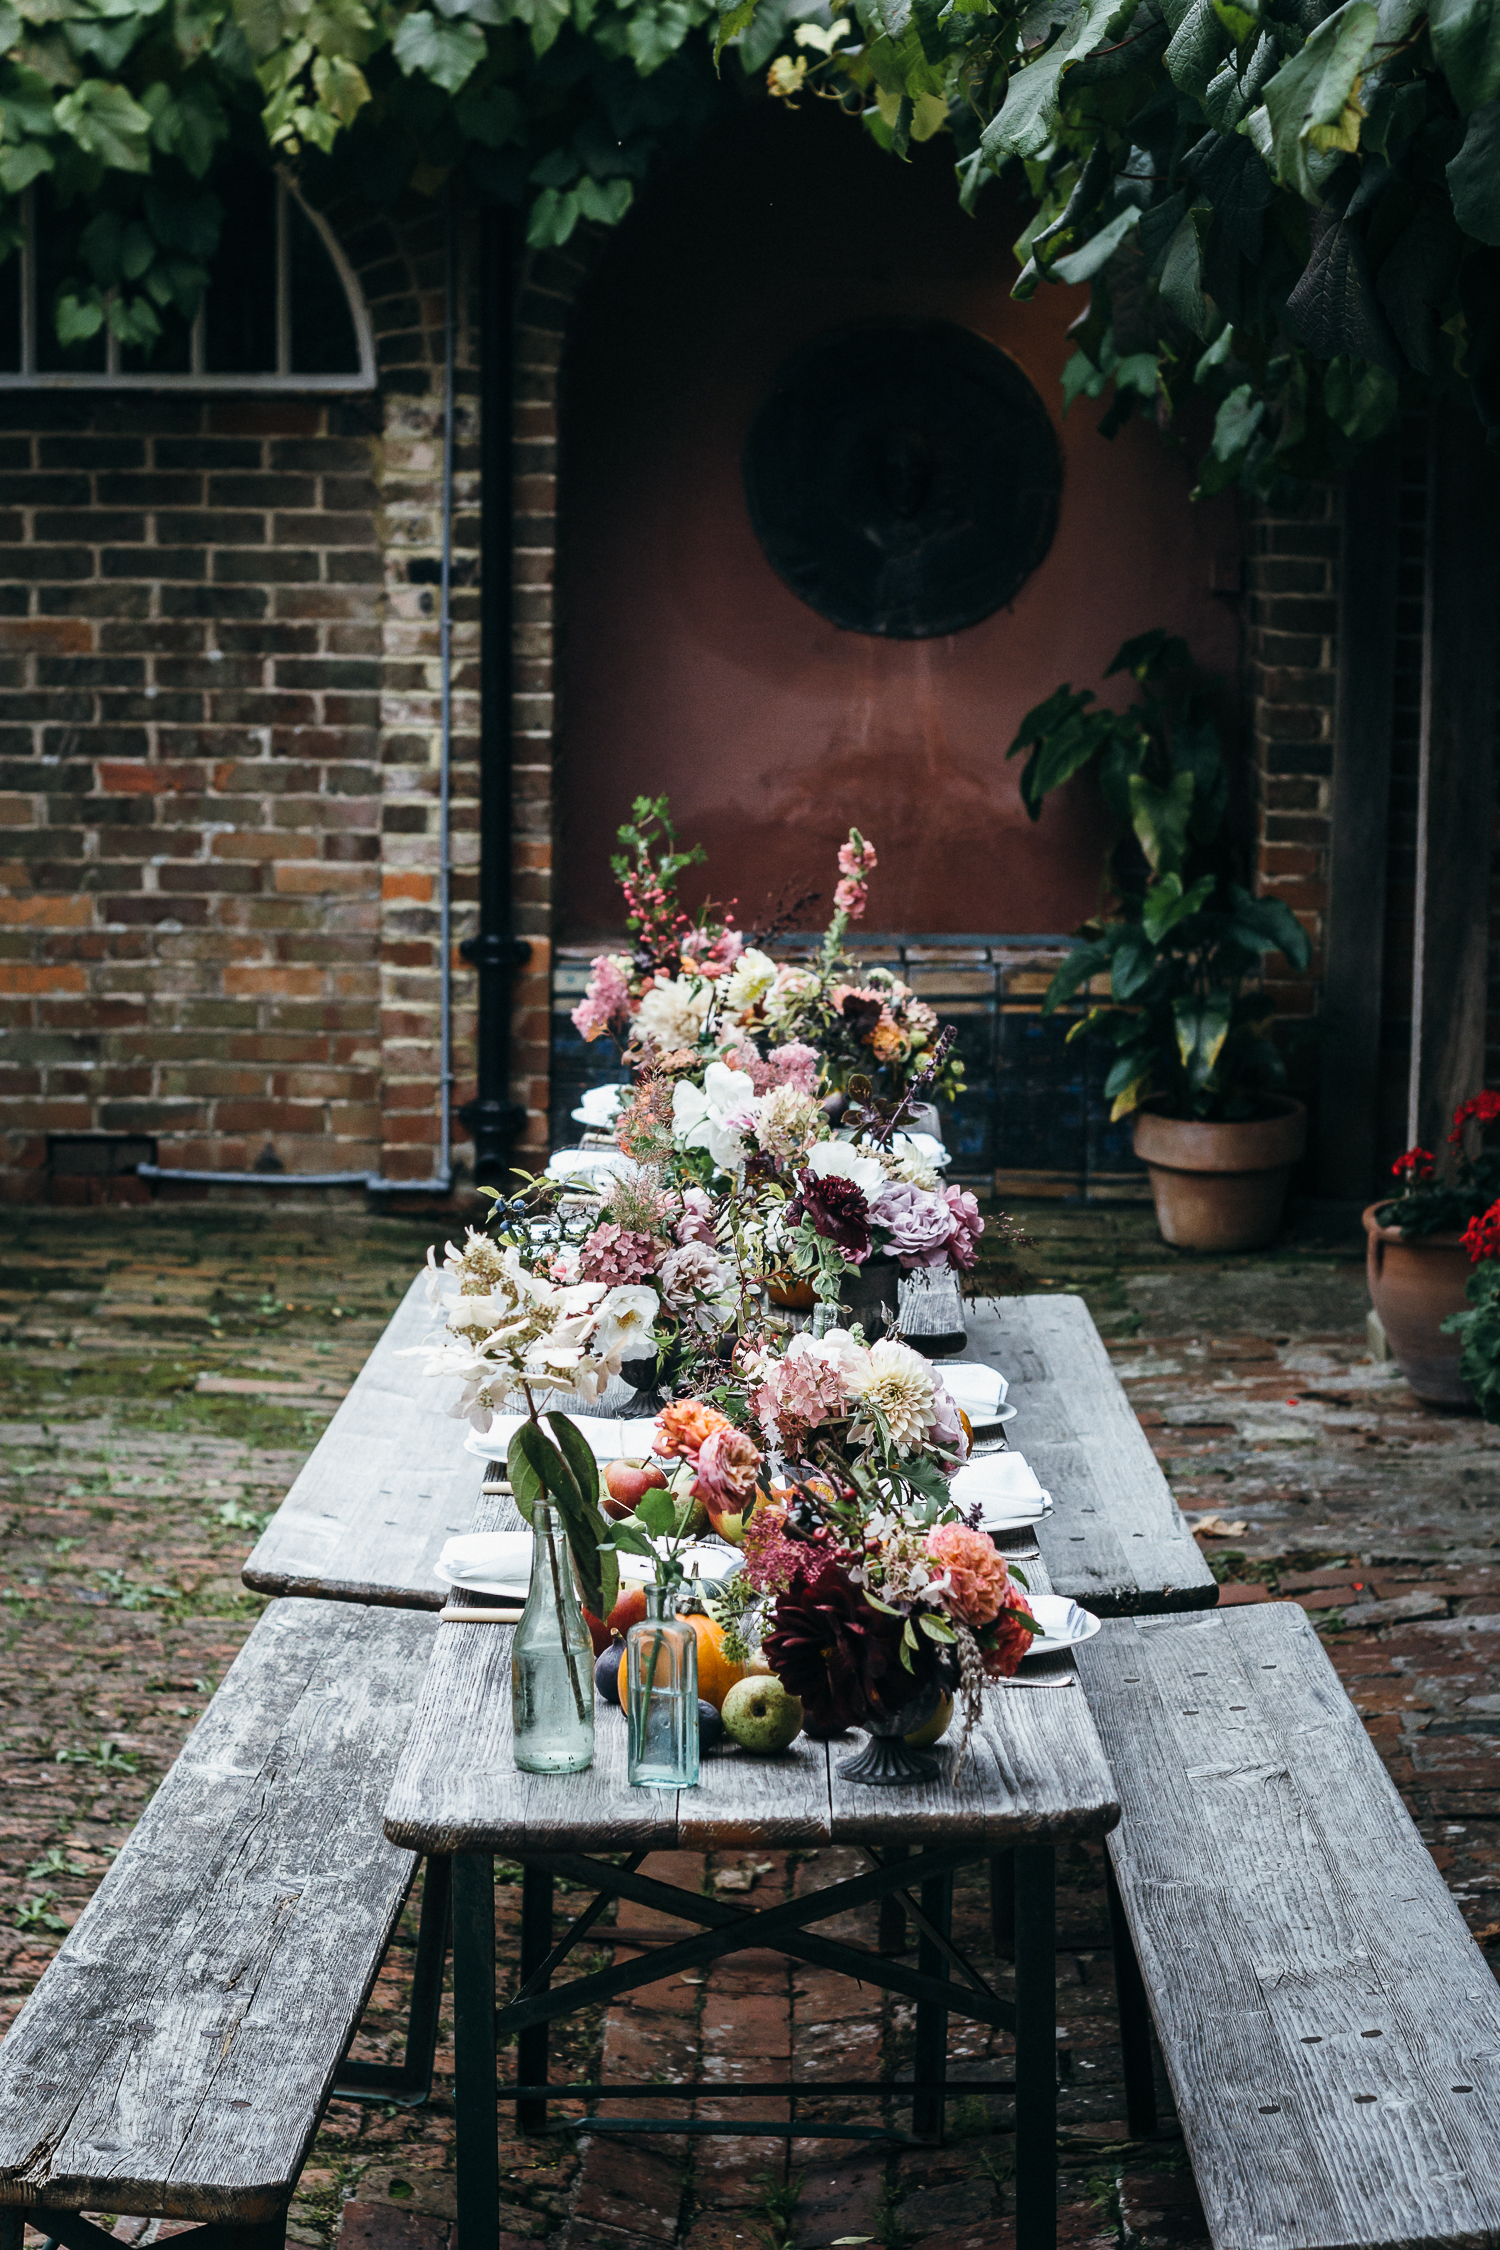 SLOW LIVING RETREAT PART TWO: GATHER AND TEND